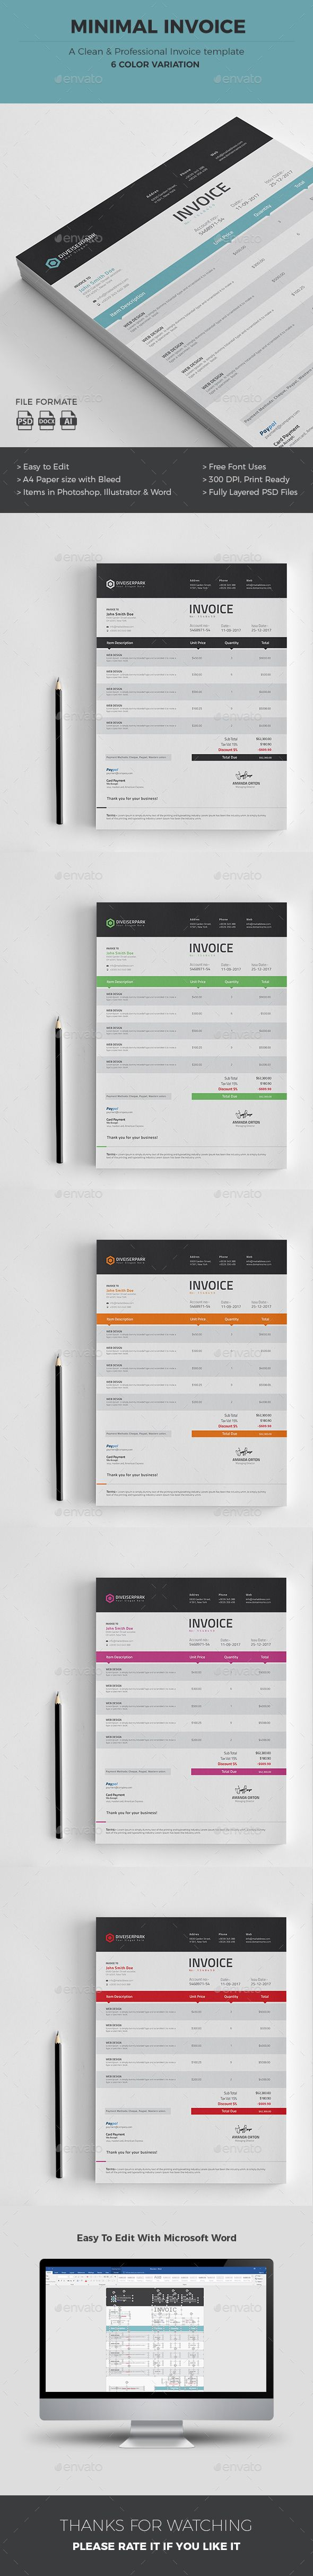 #Invoice - #Proposals & Invoices Stationery